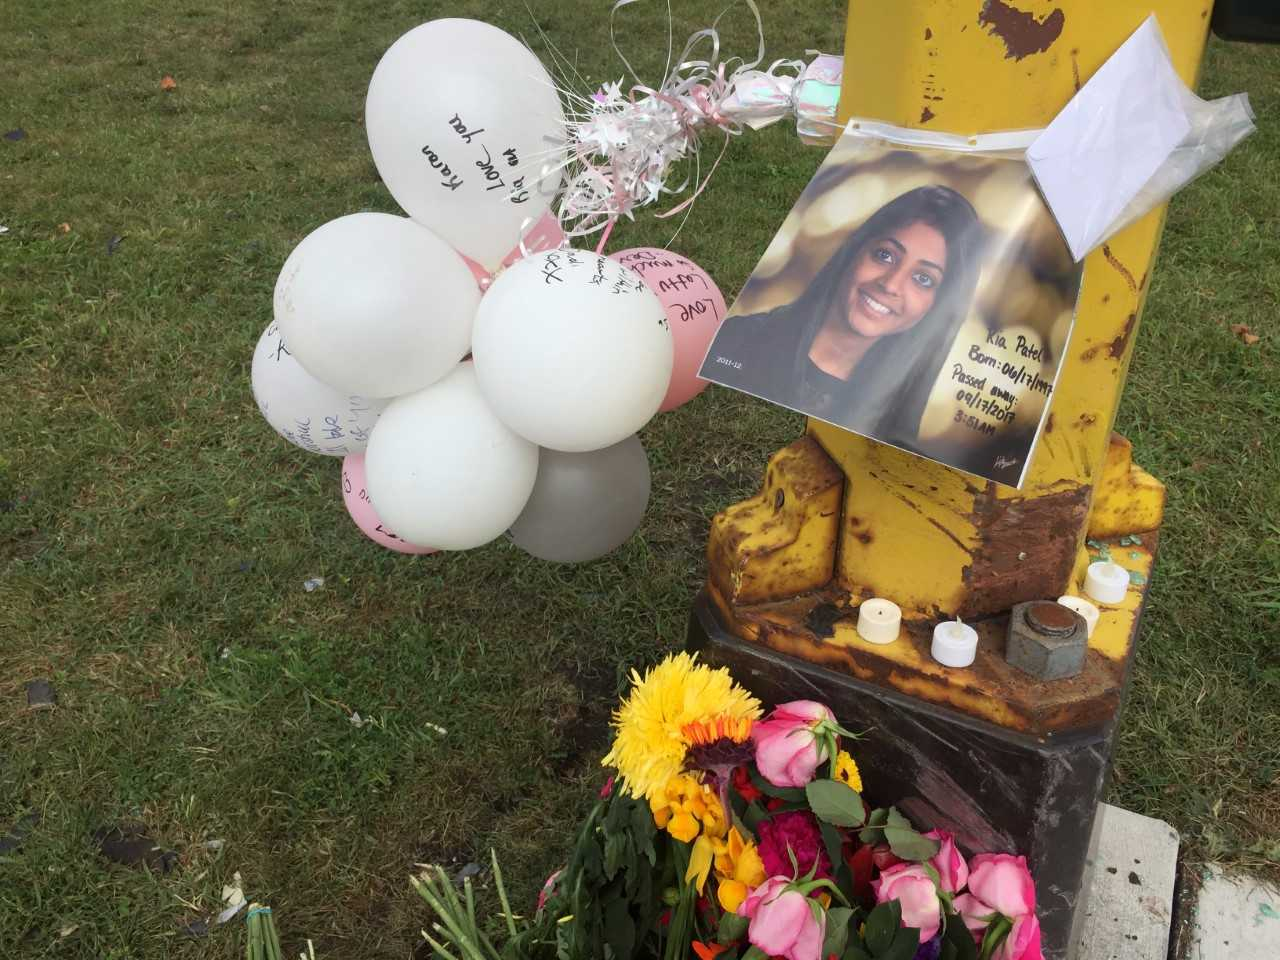 Vigil To Honor St. Thomas Student Killed In Crash